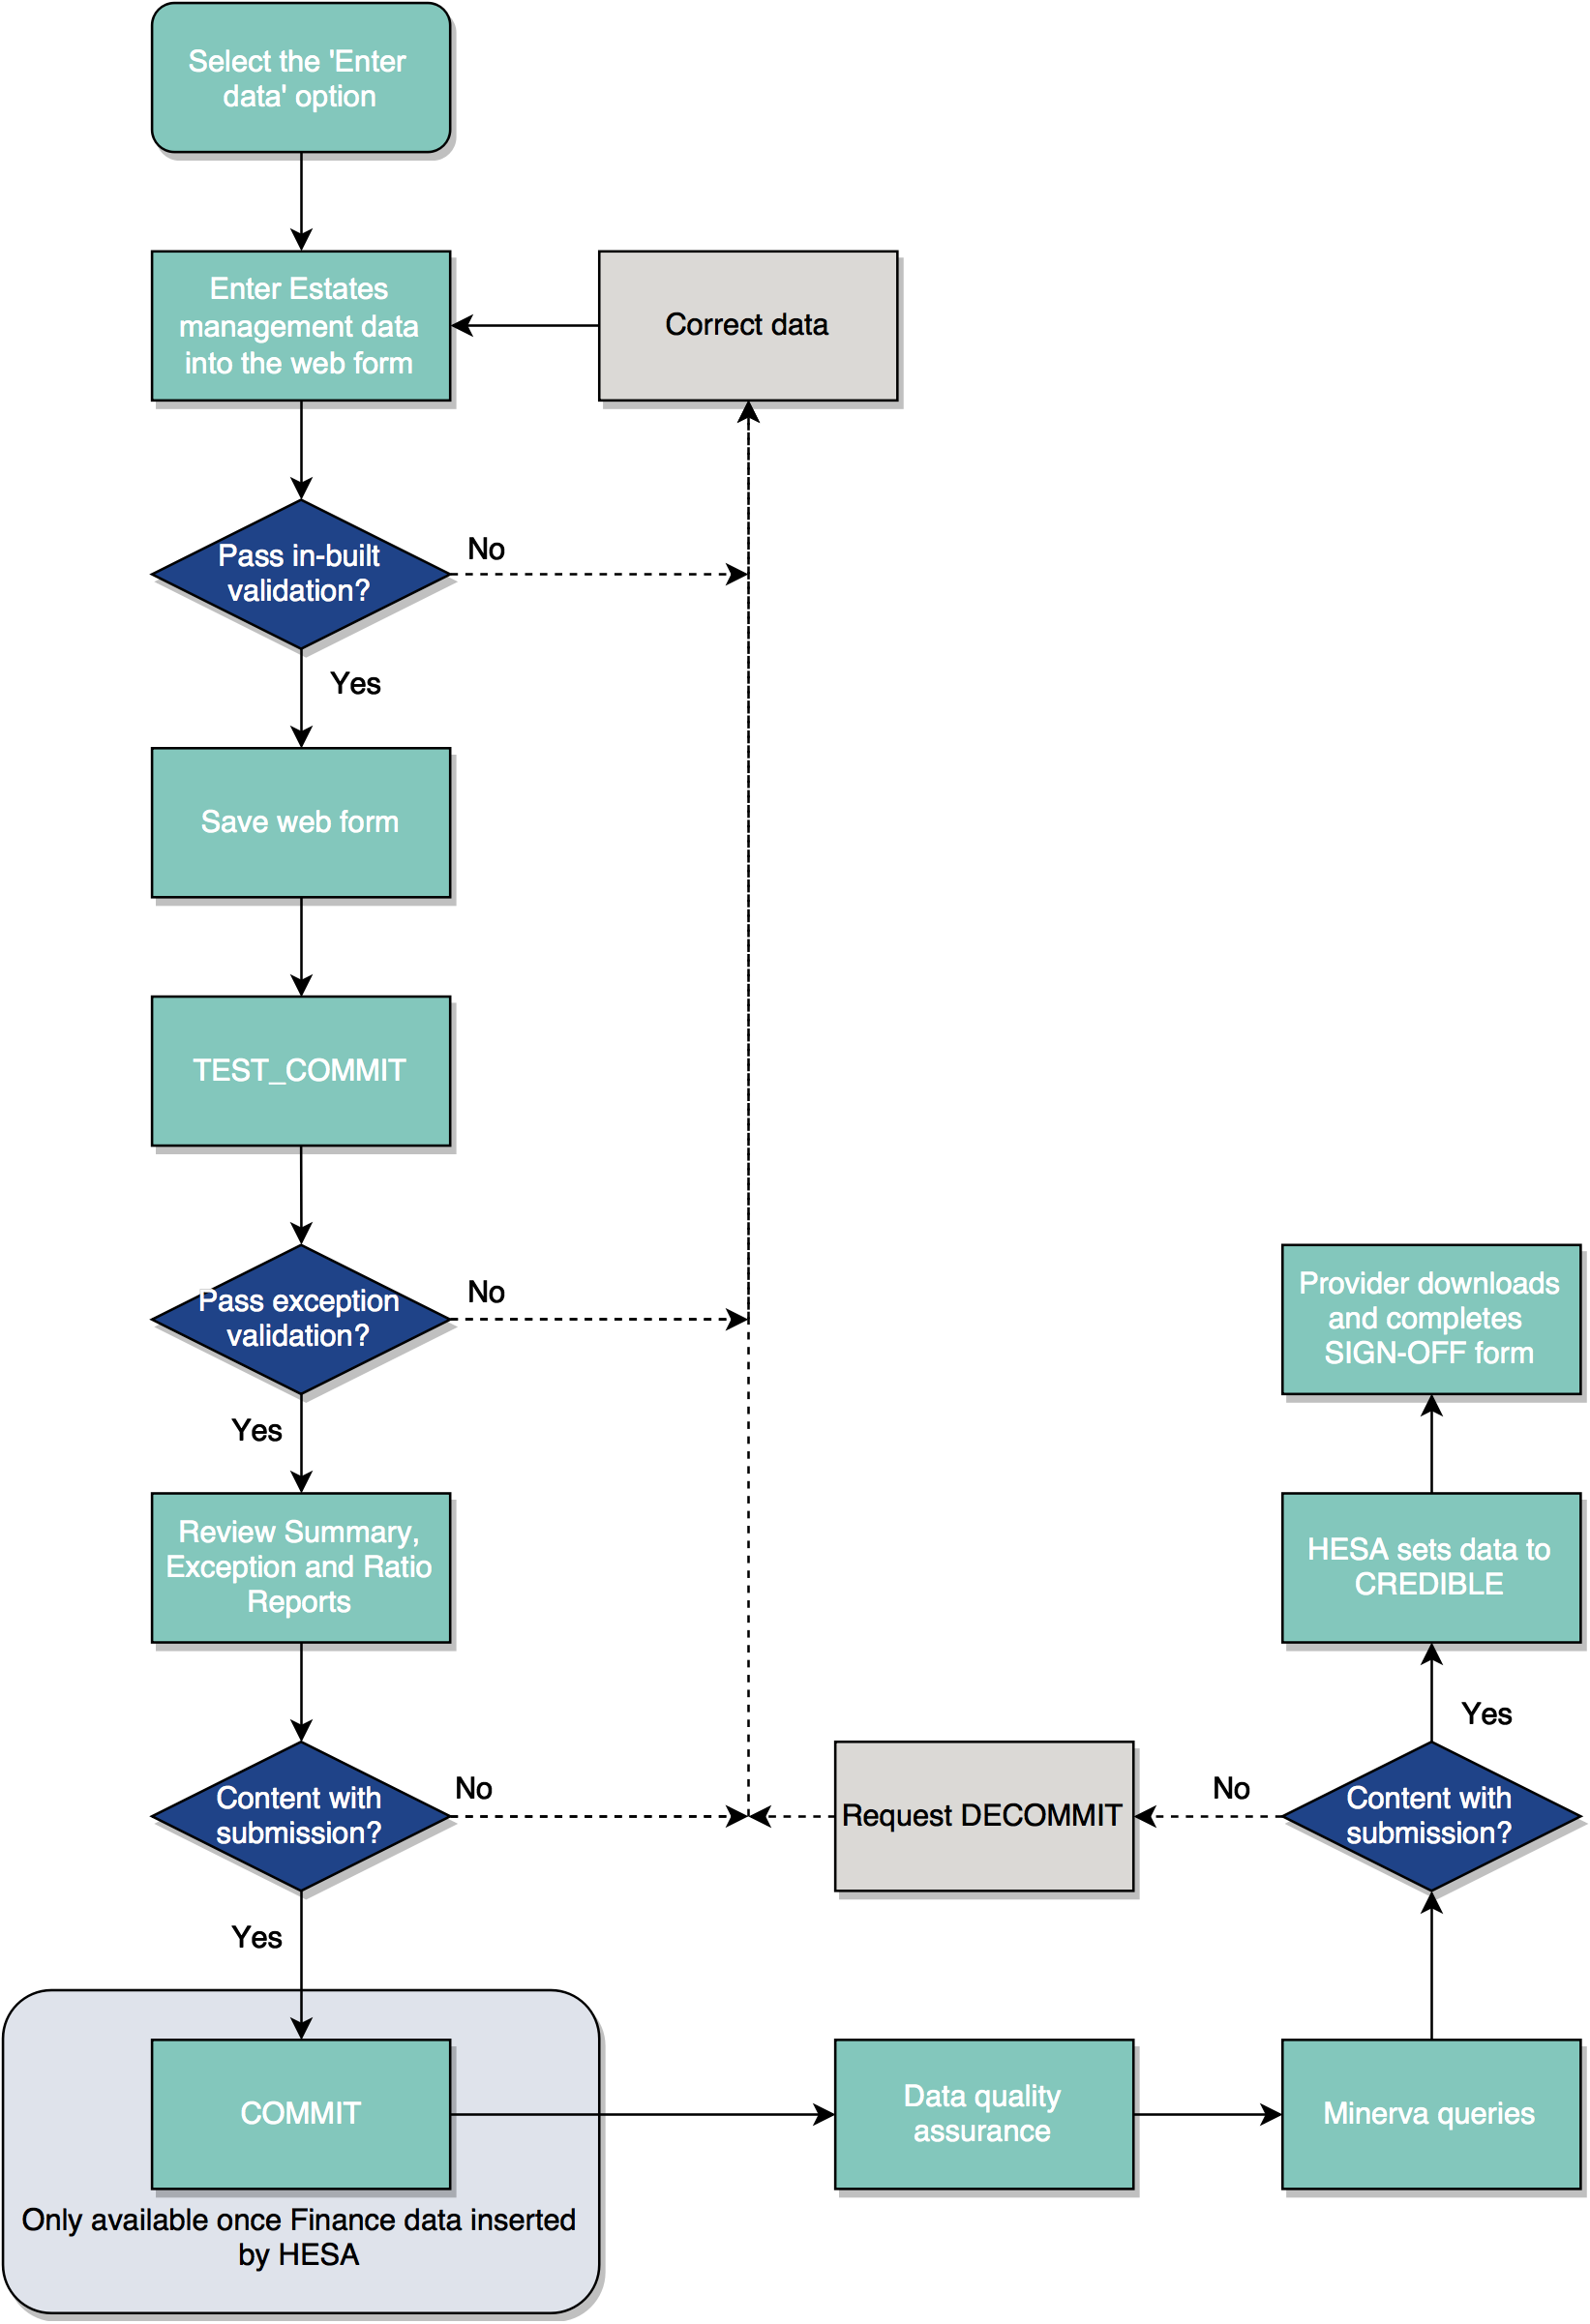 Estates data submission process diagram